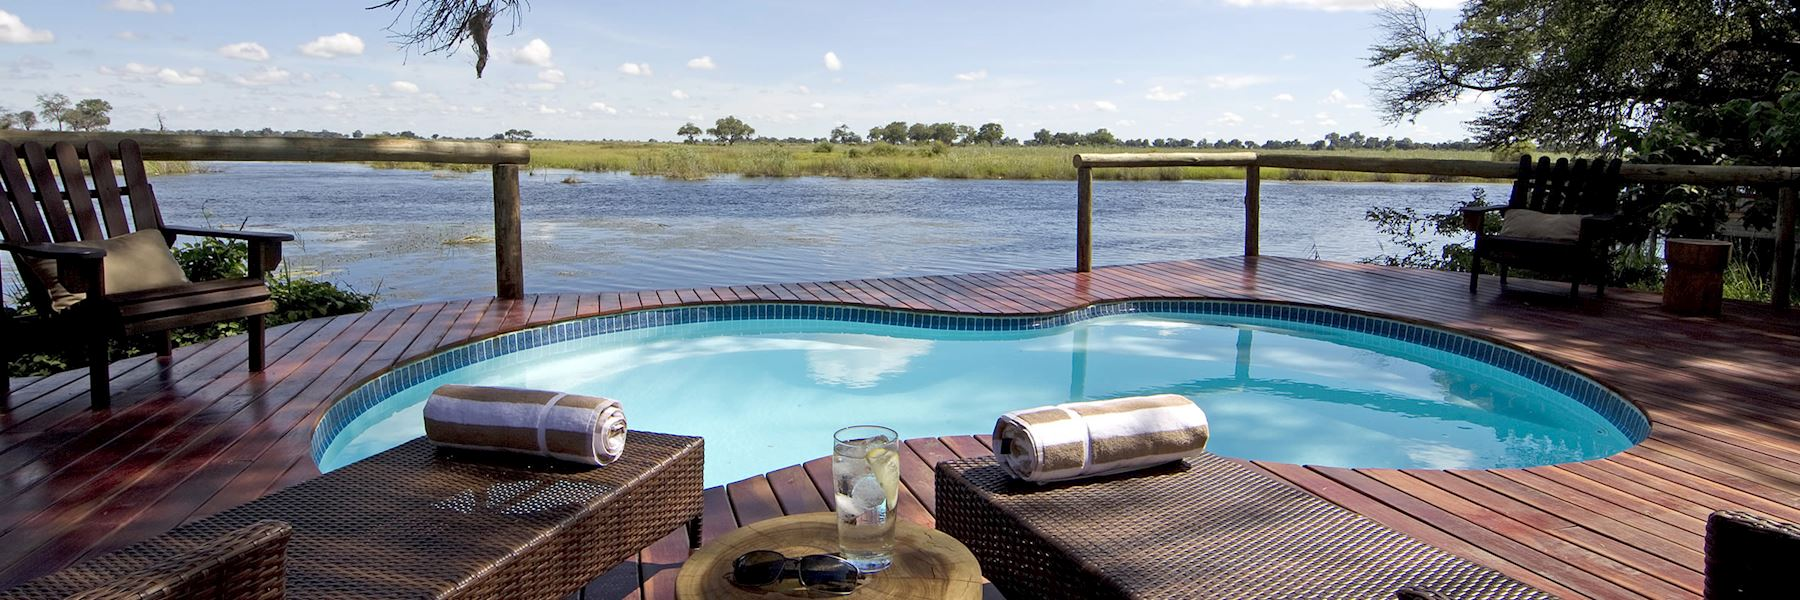 Accommodations in Botswana